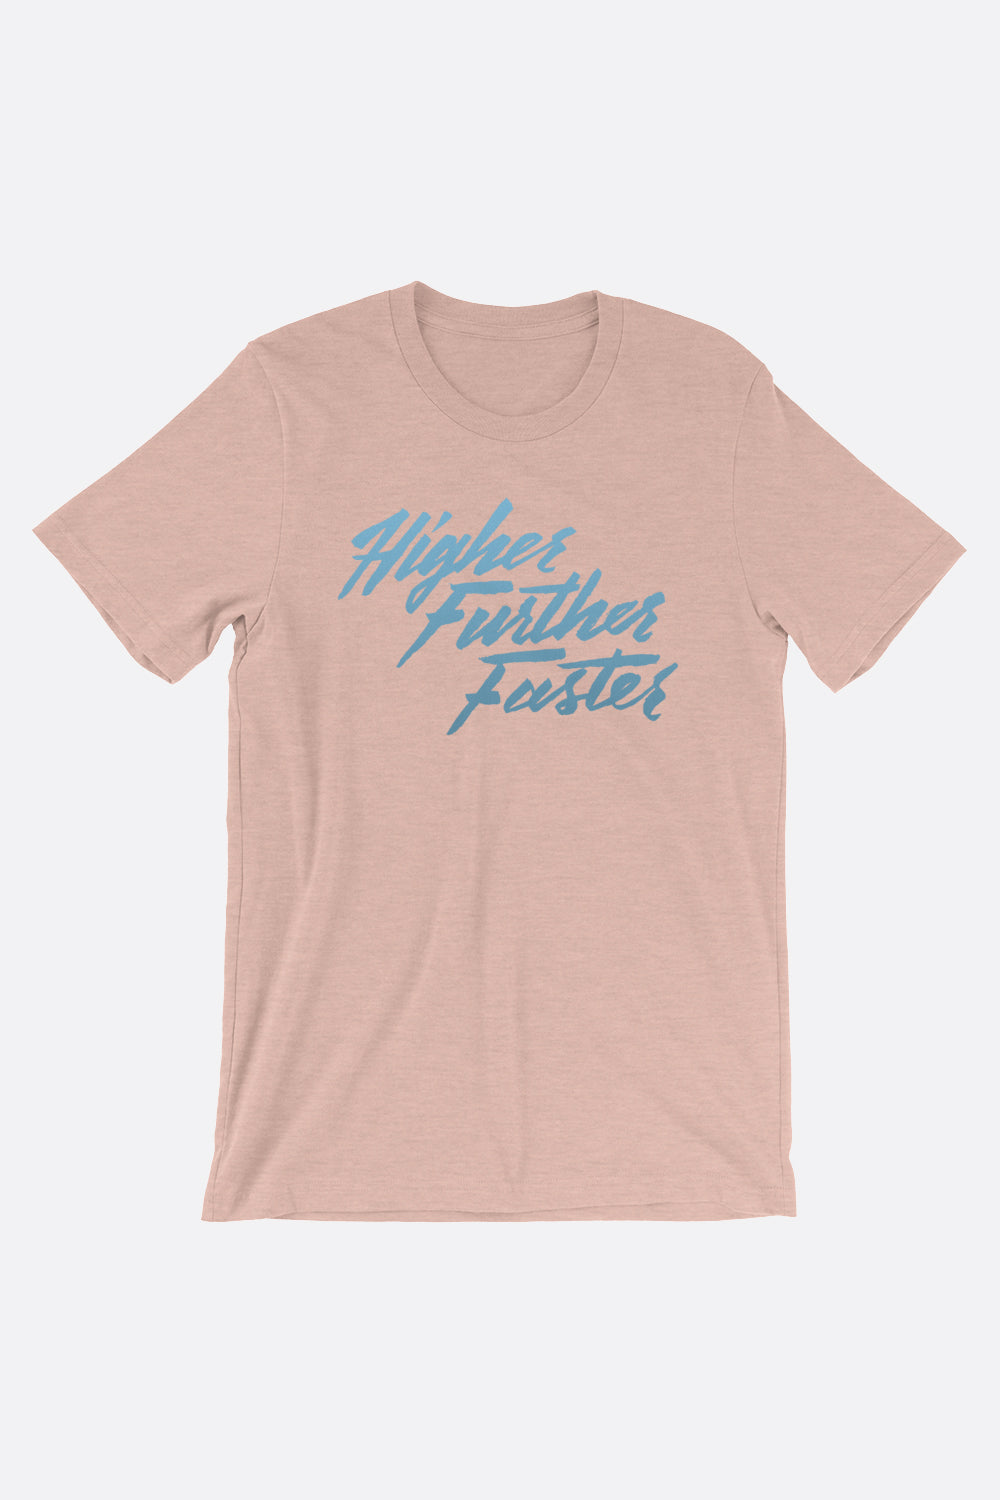 Higher Further Faster Unisex T-Shirt